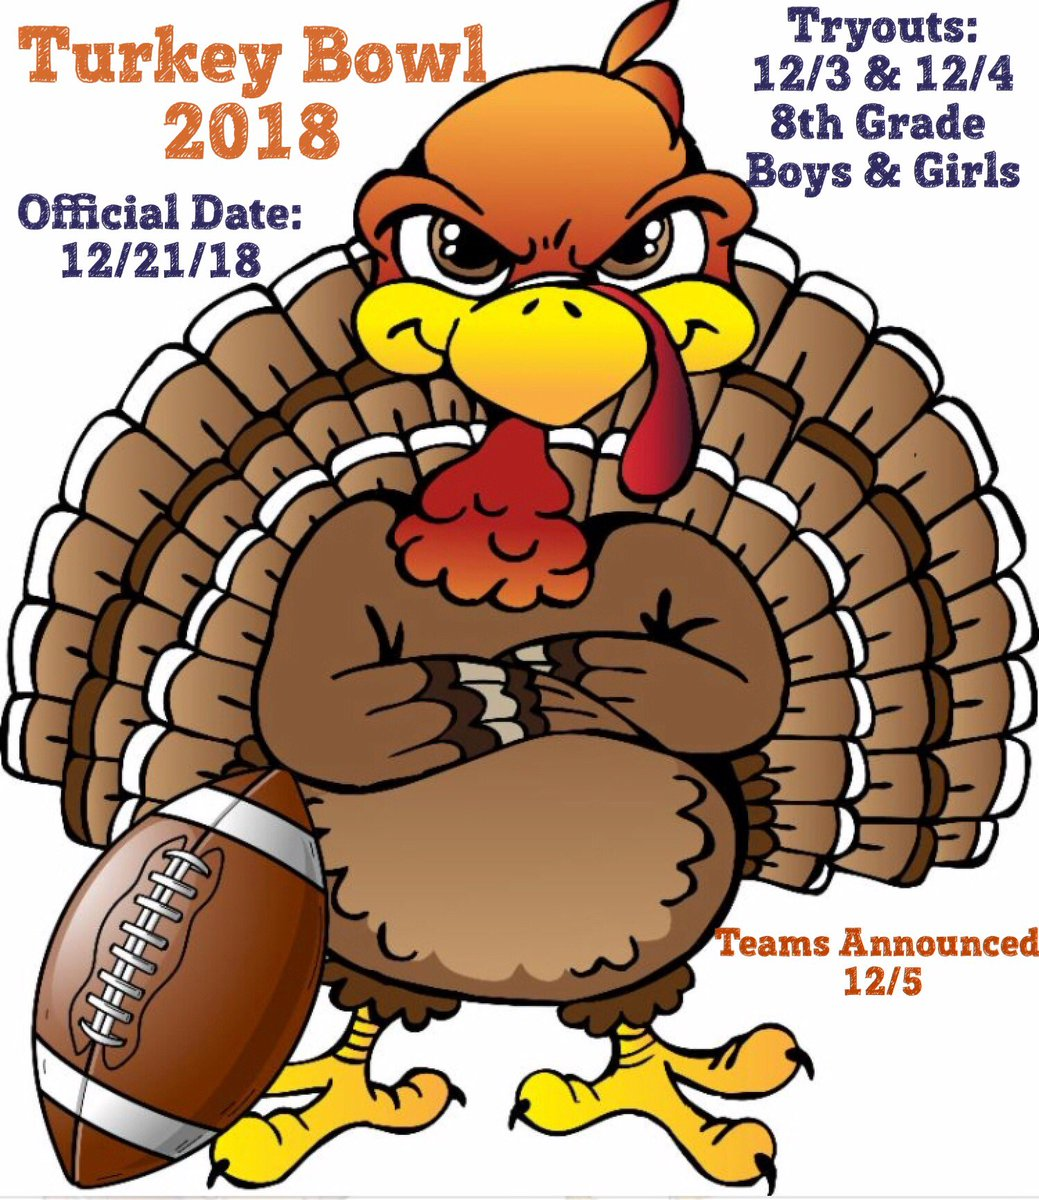 Turkey Bowl 2018!